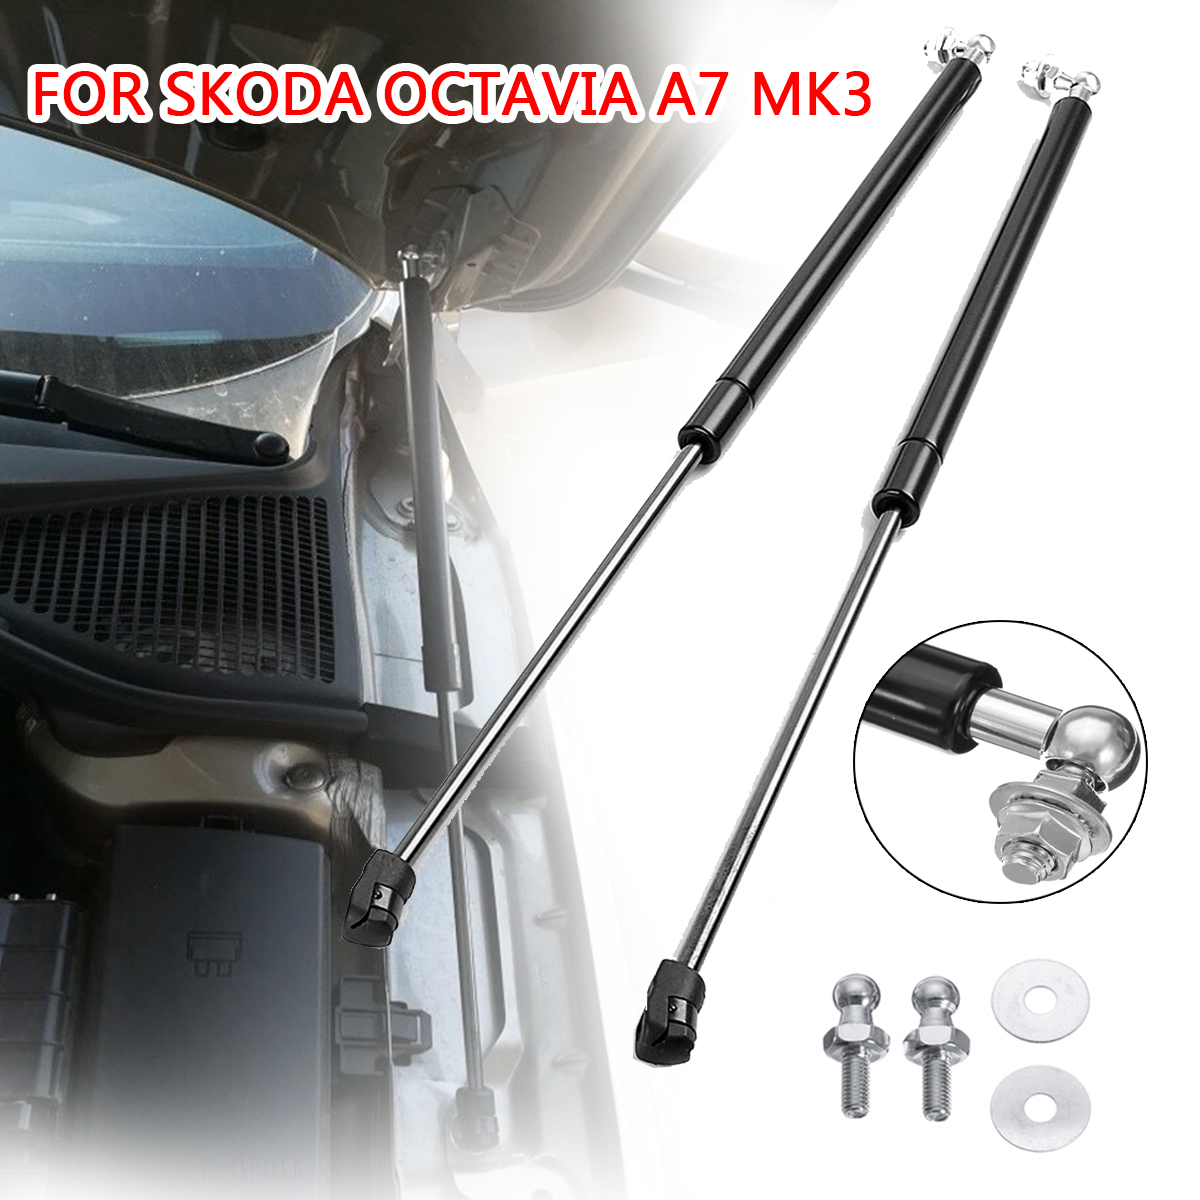 2Pcs Car Gas Shock Hood Shock Strut Damper Lift Support for Skoda Octavia A7 MK3 Stainless Steel Hydraulic Rod Car Accessories 2qty front hood lift support strut spring rod for mercedes benz cls500 cls55